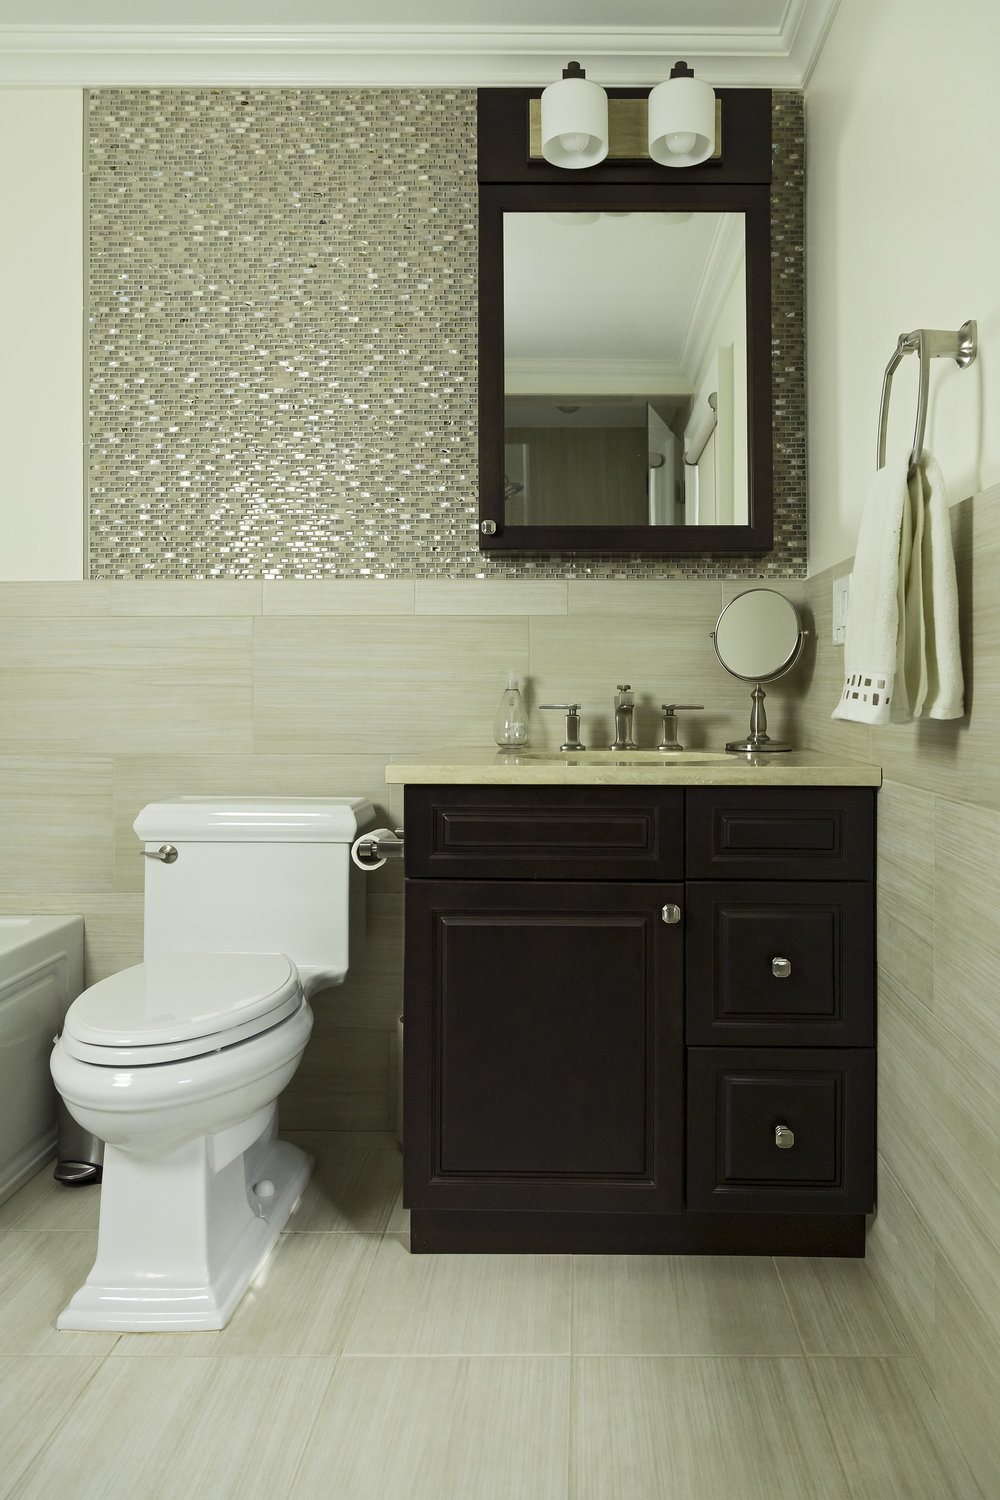 Classic style bathroom with mottled tile on walls